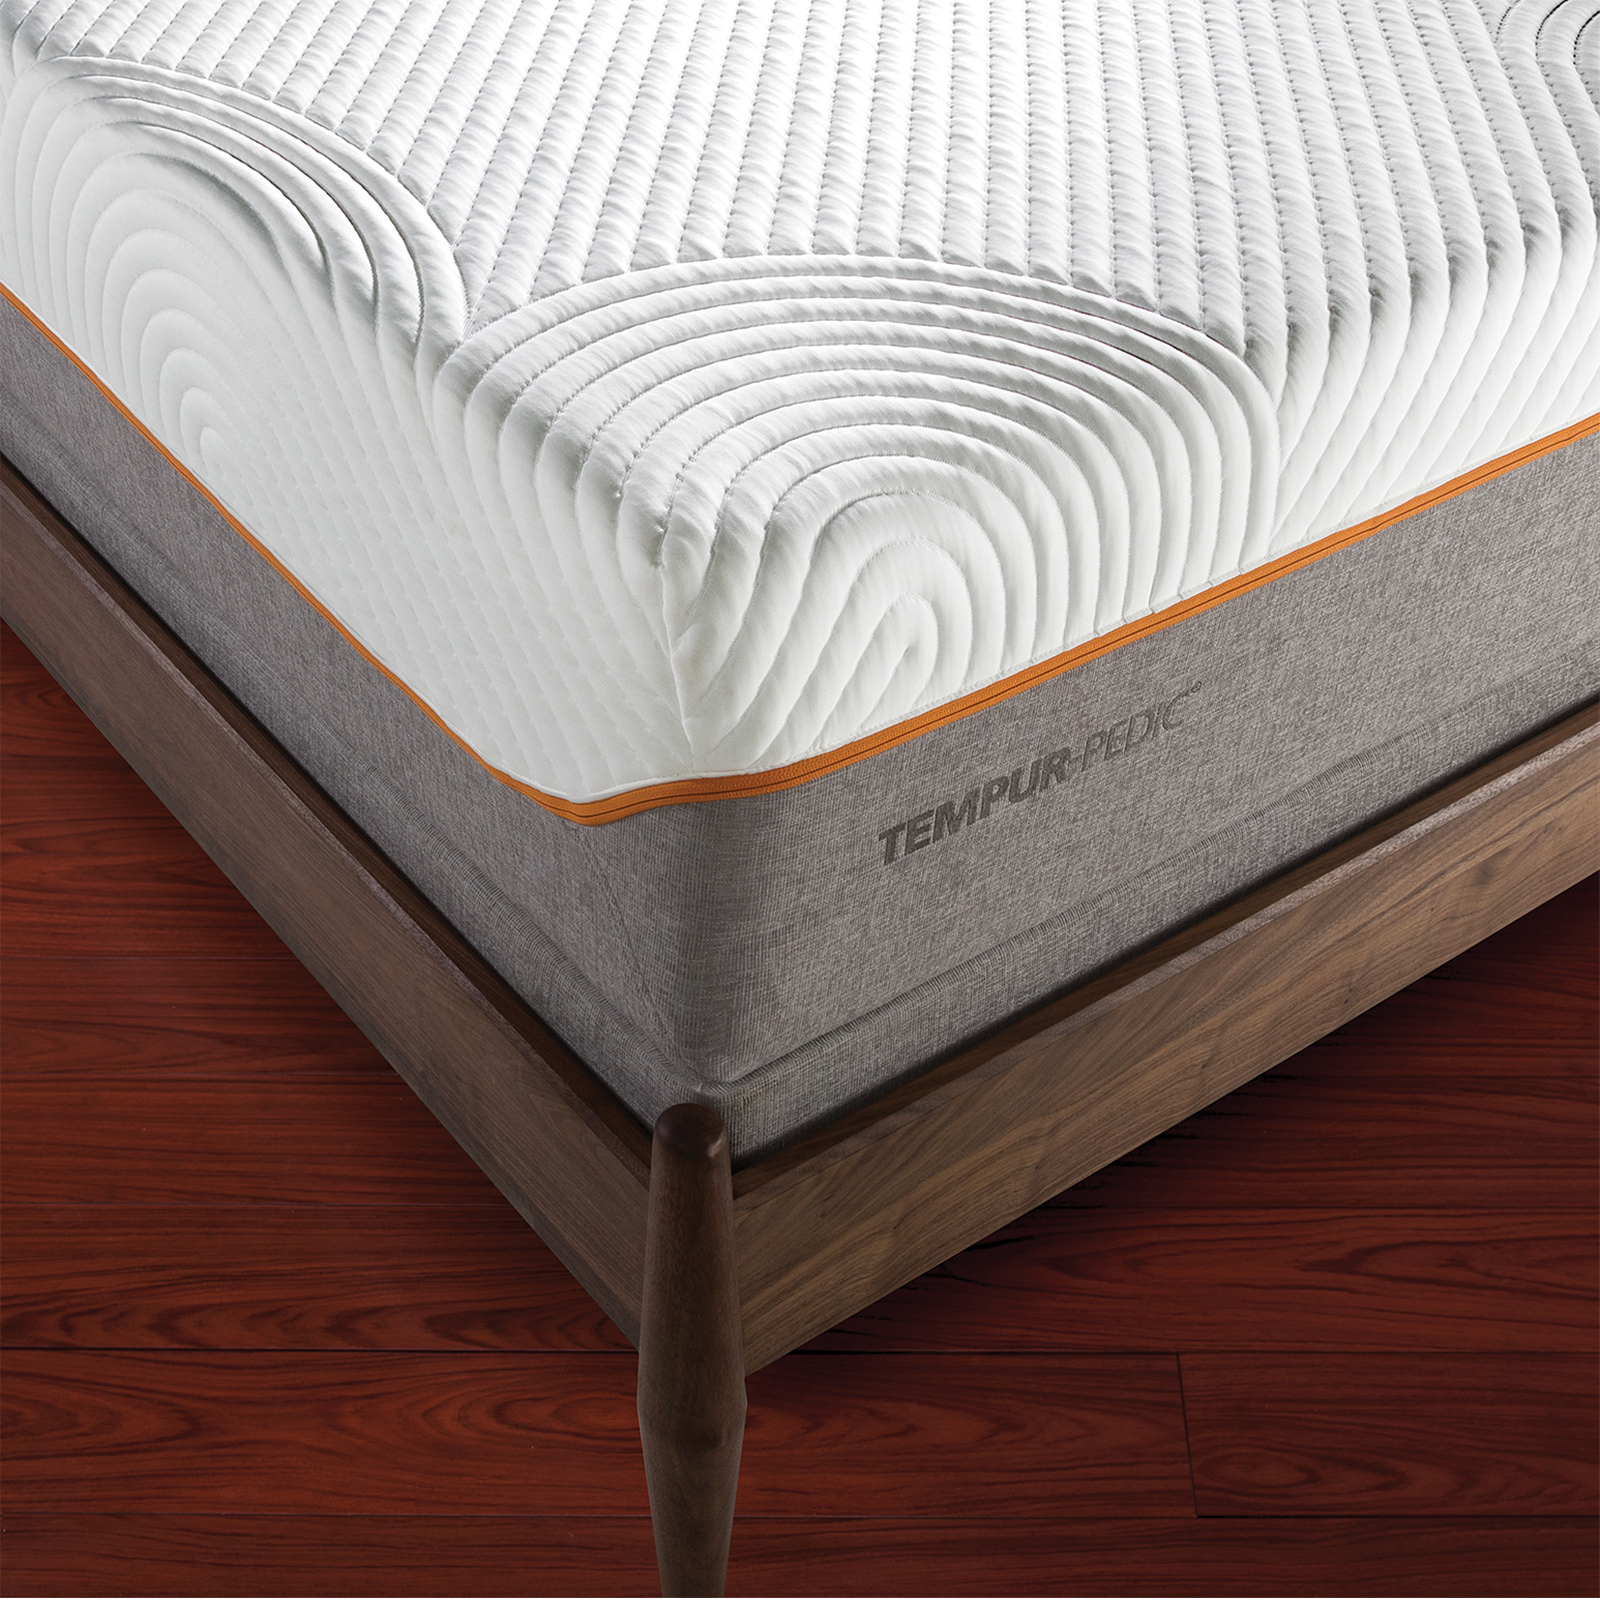 Tempurpedic Mattress King Size Tempur Pedic Tempur Contour Elite King Mattress